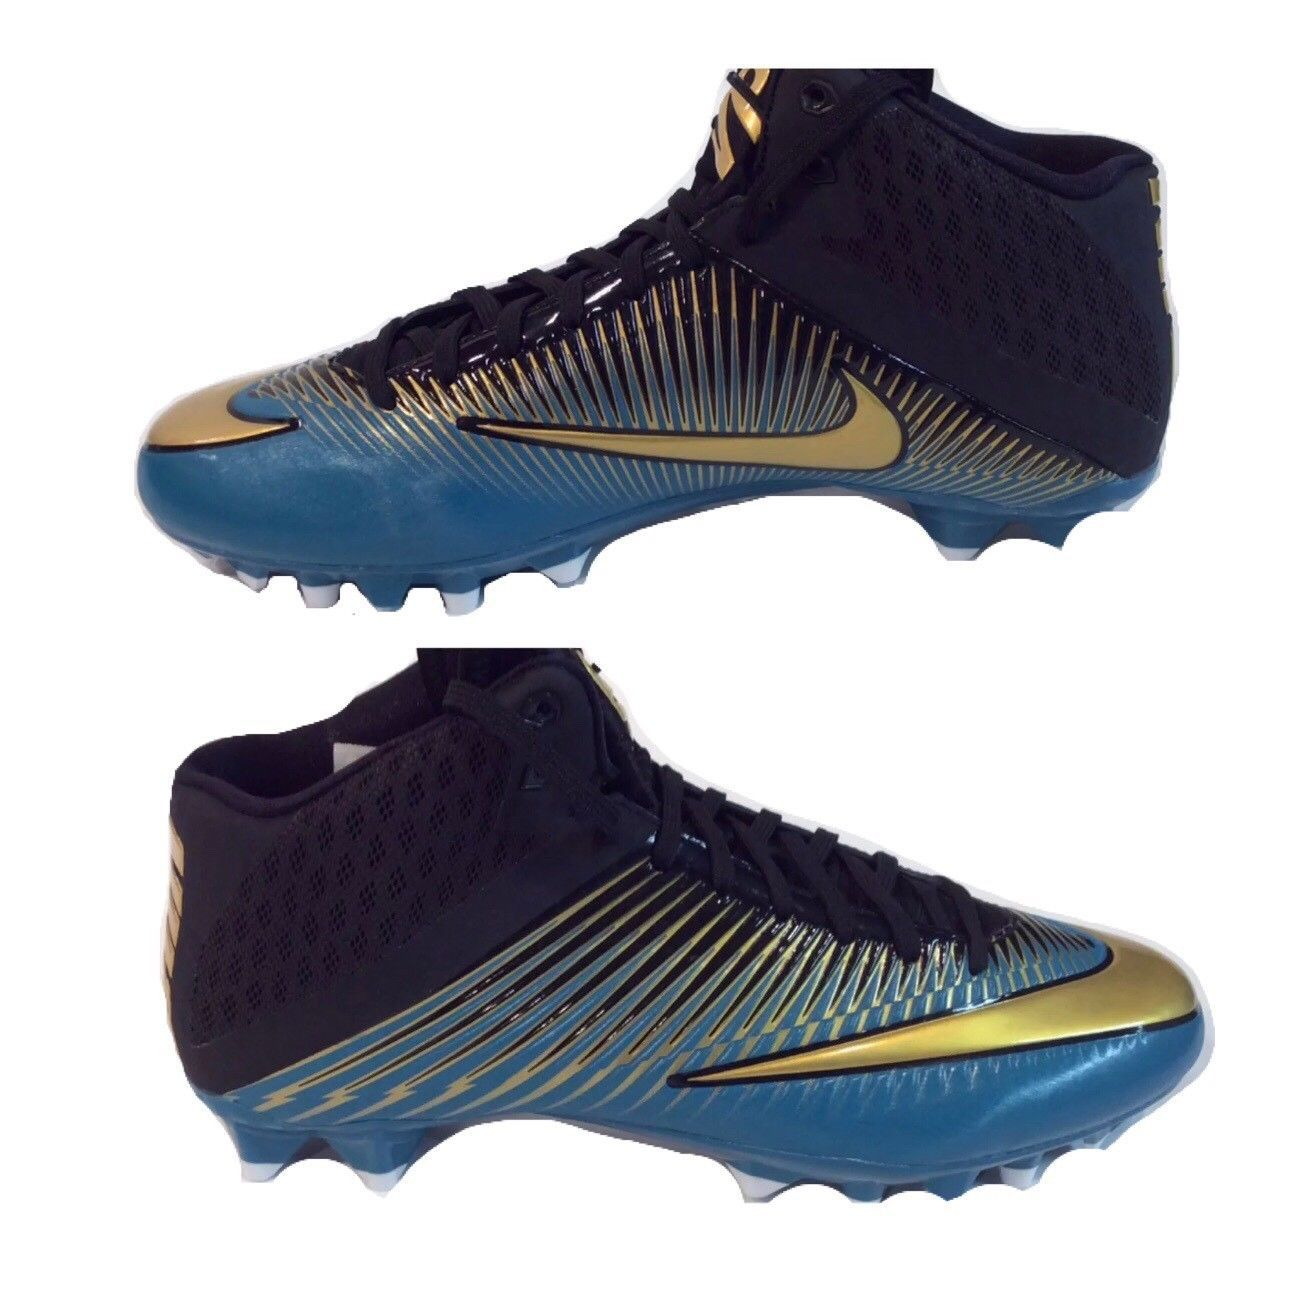 043220b3706 Nike 846805-415 Vapor Speed 2 Low TD (11.5) and 11 similar items. S l1600